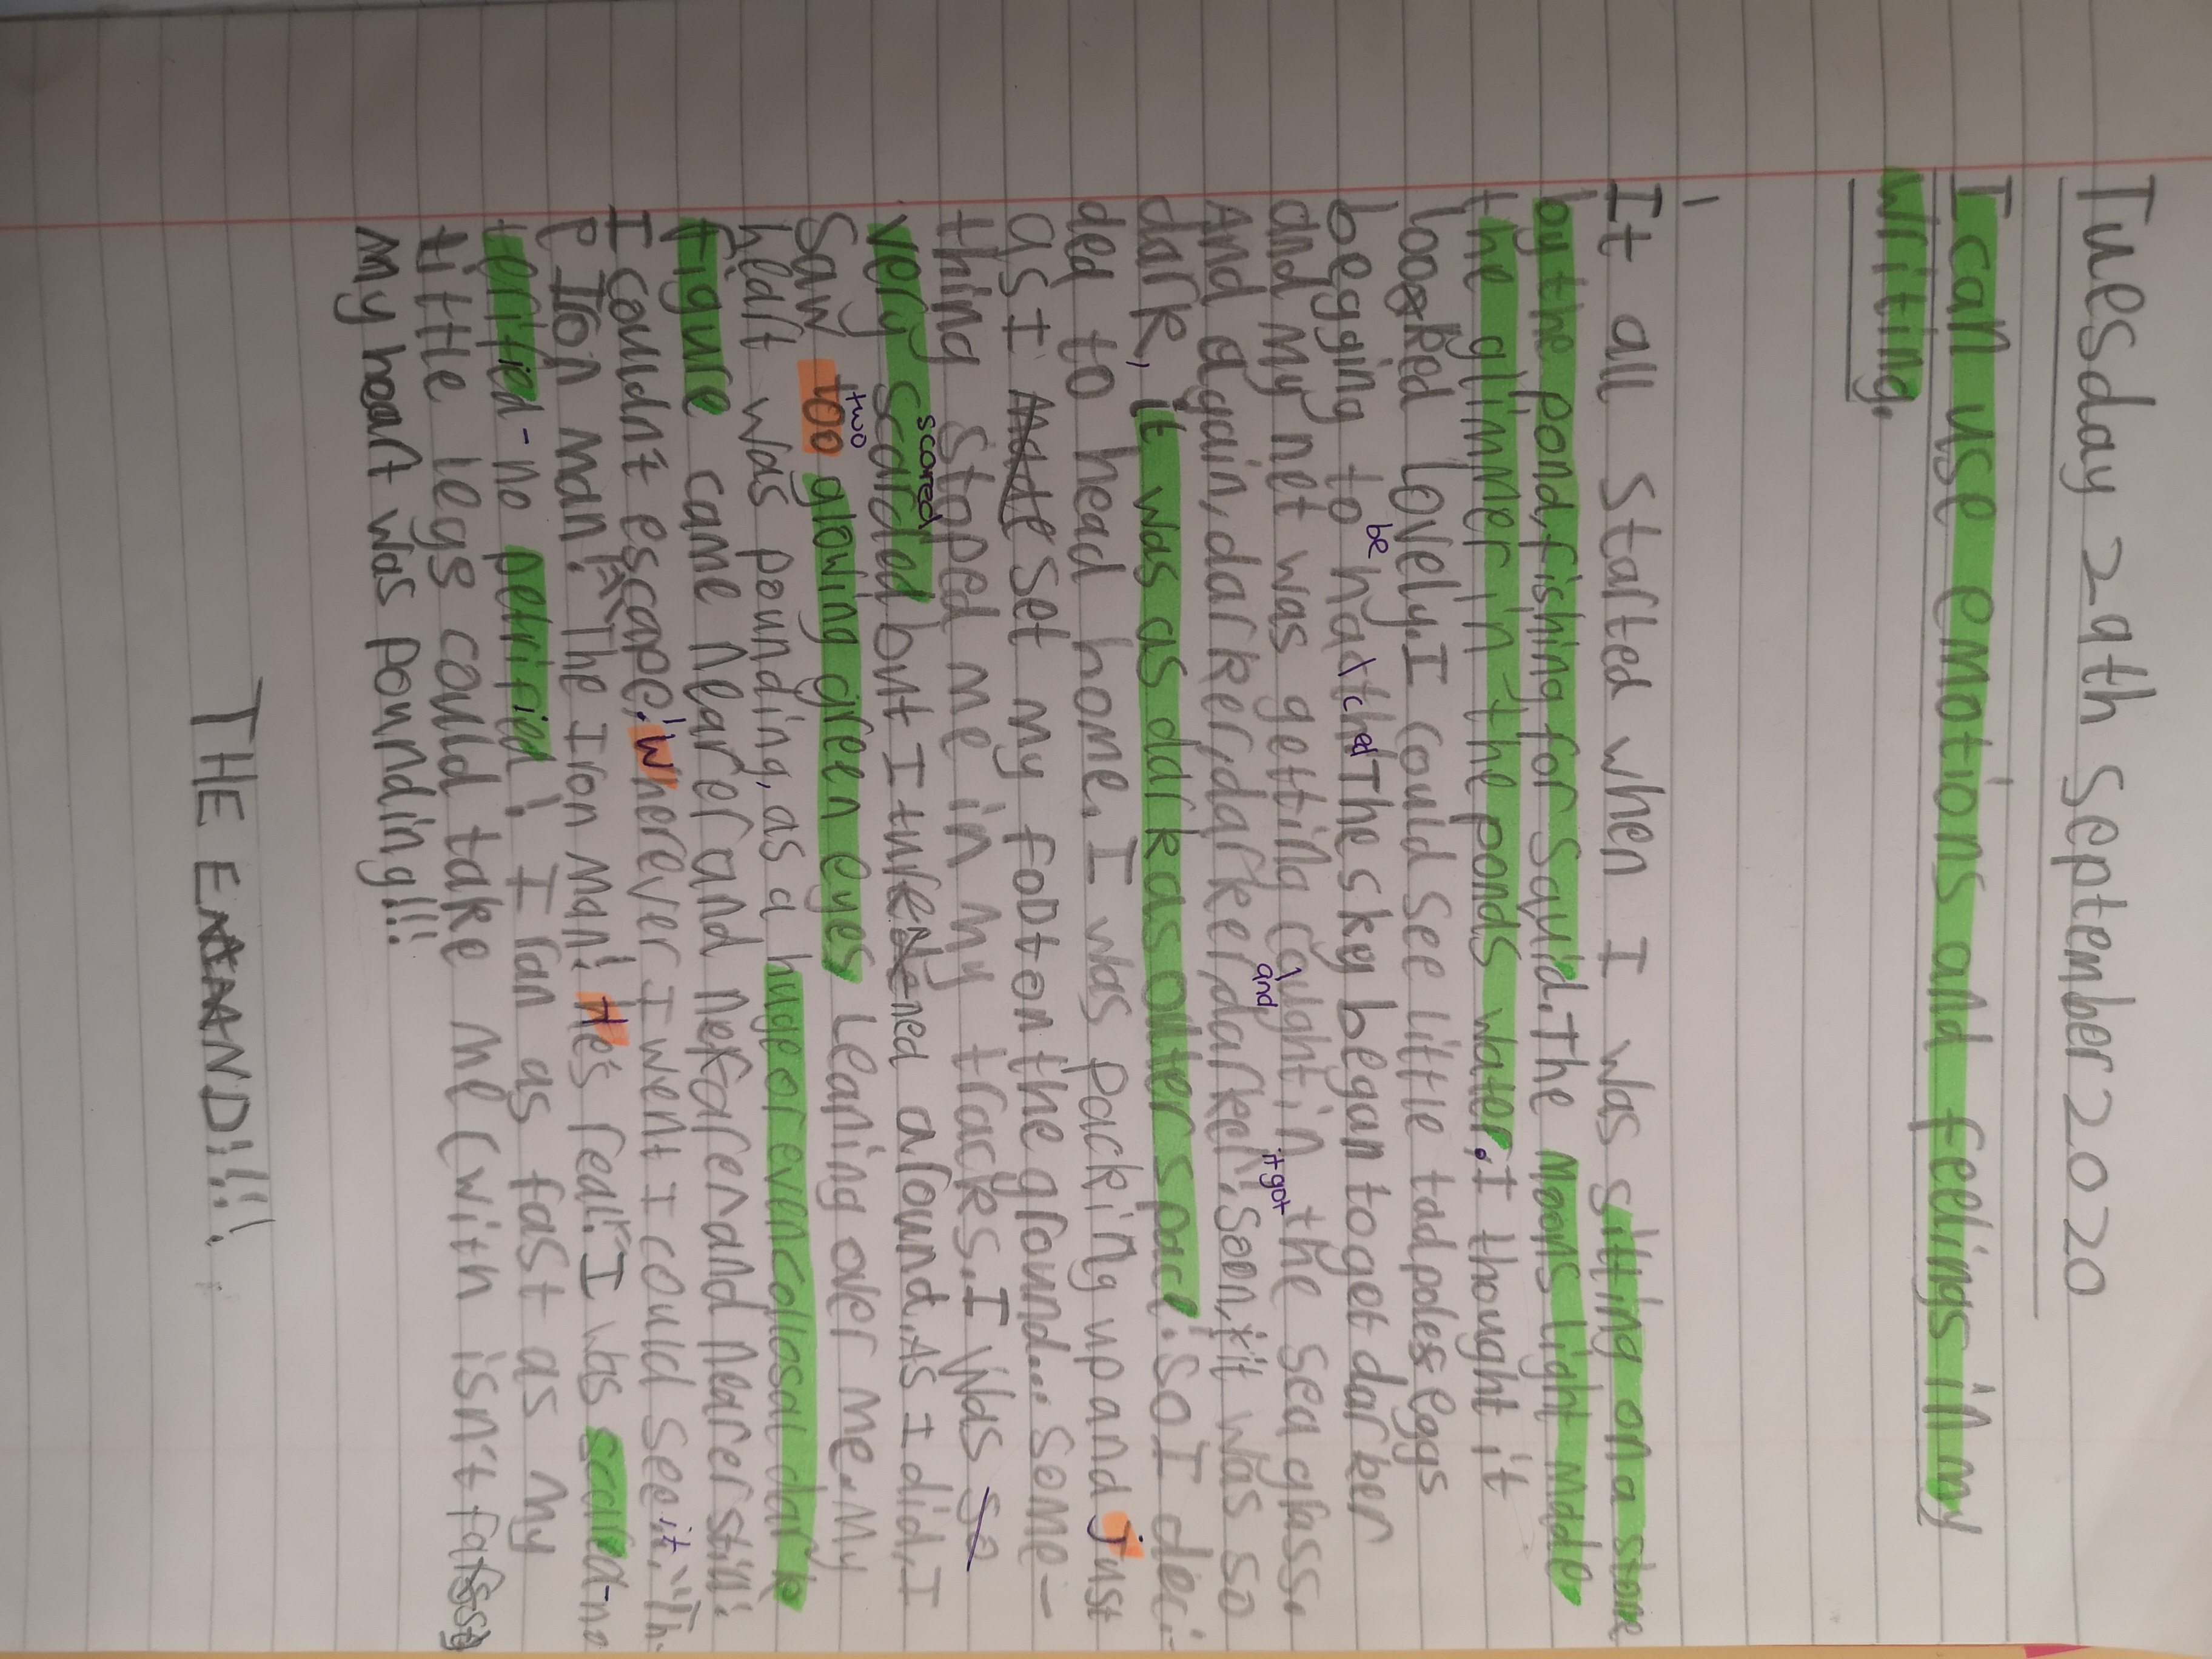 Darcey - great writing!